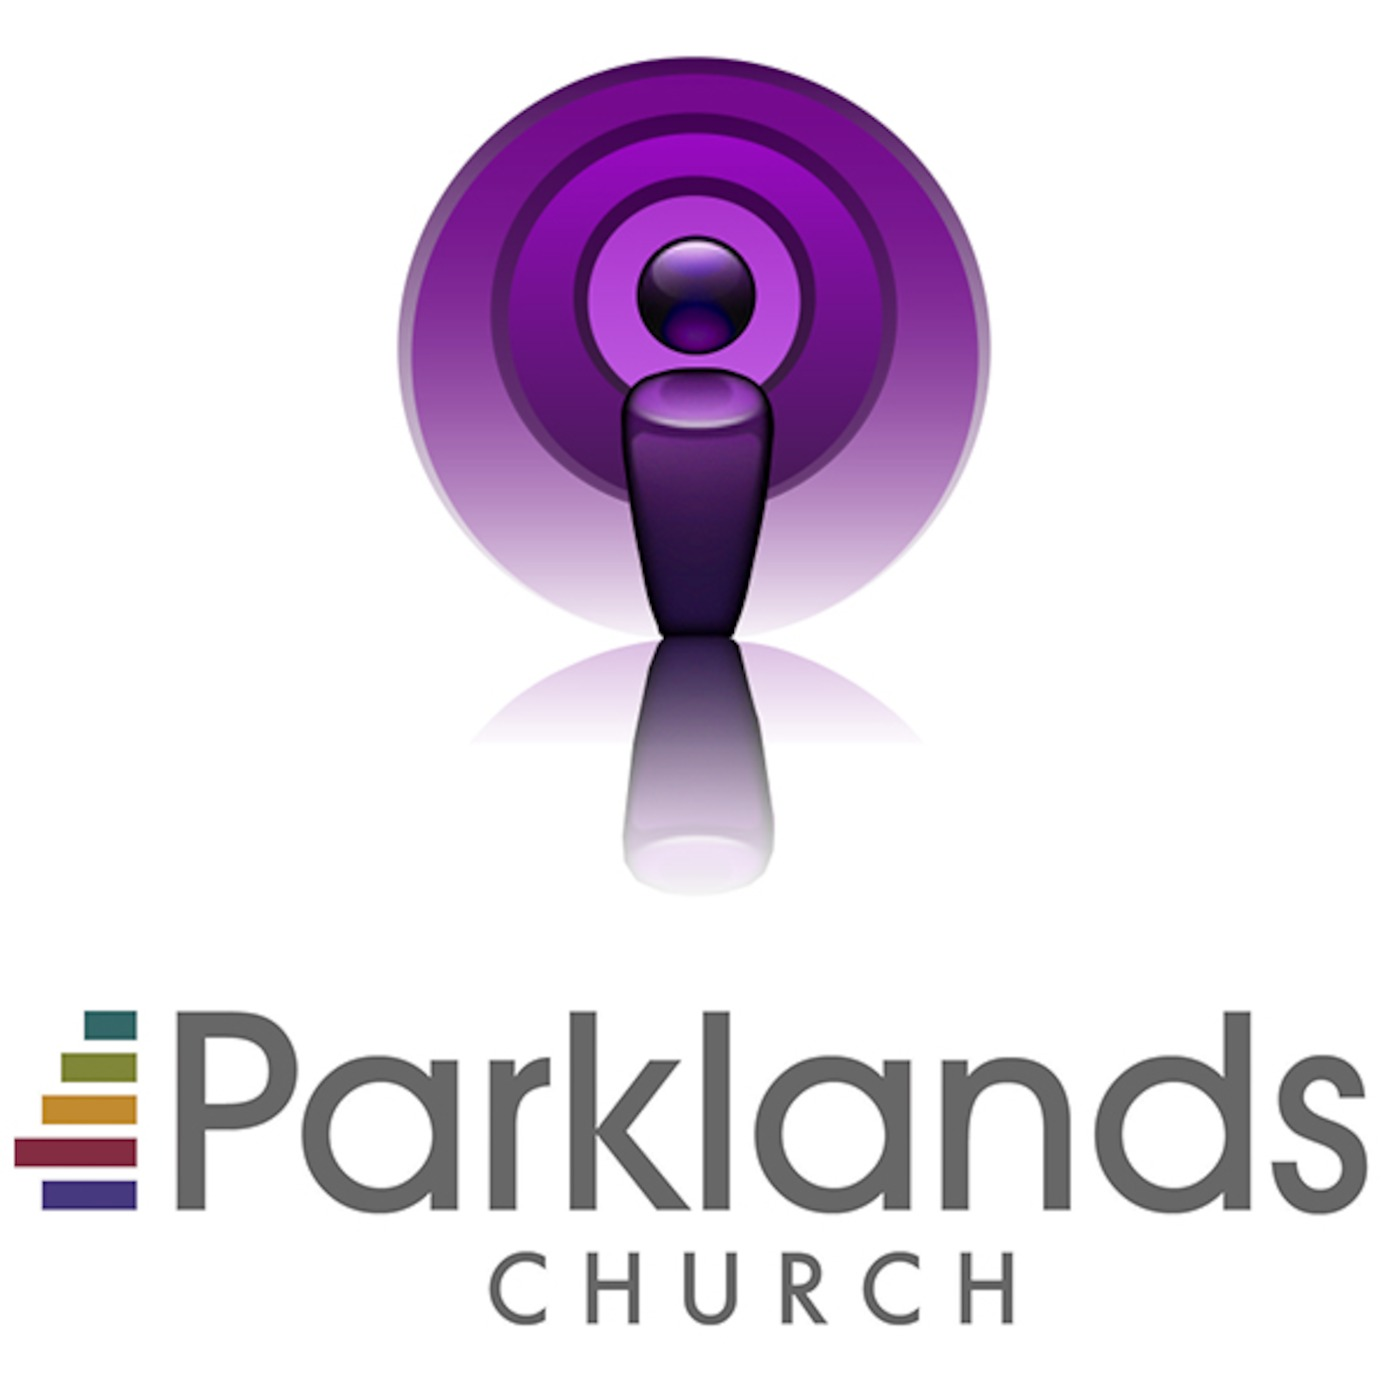 Parklands Church